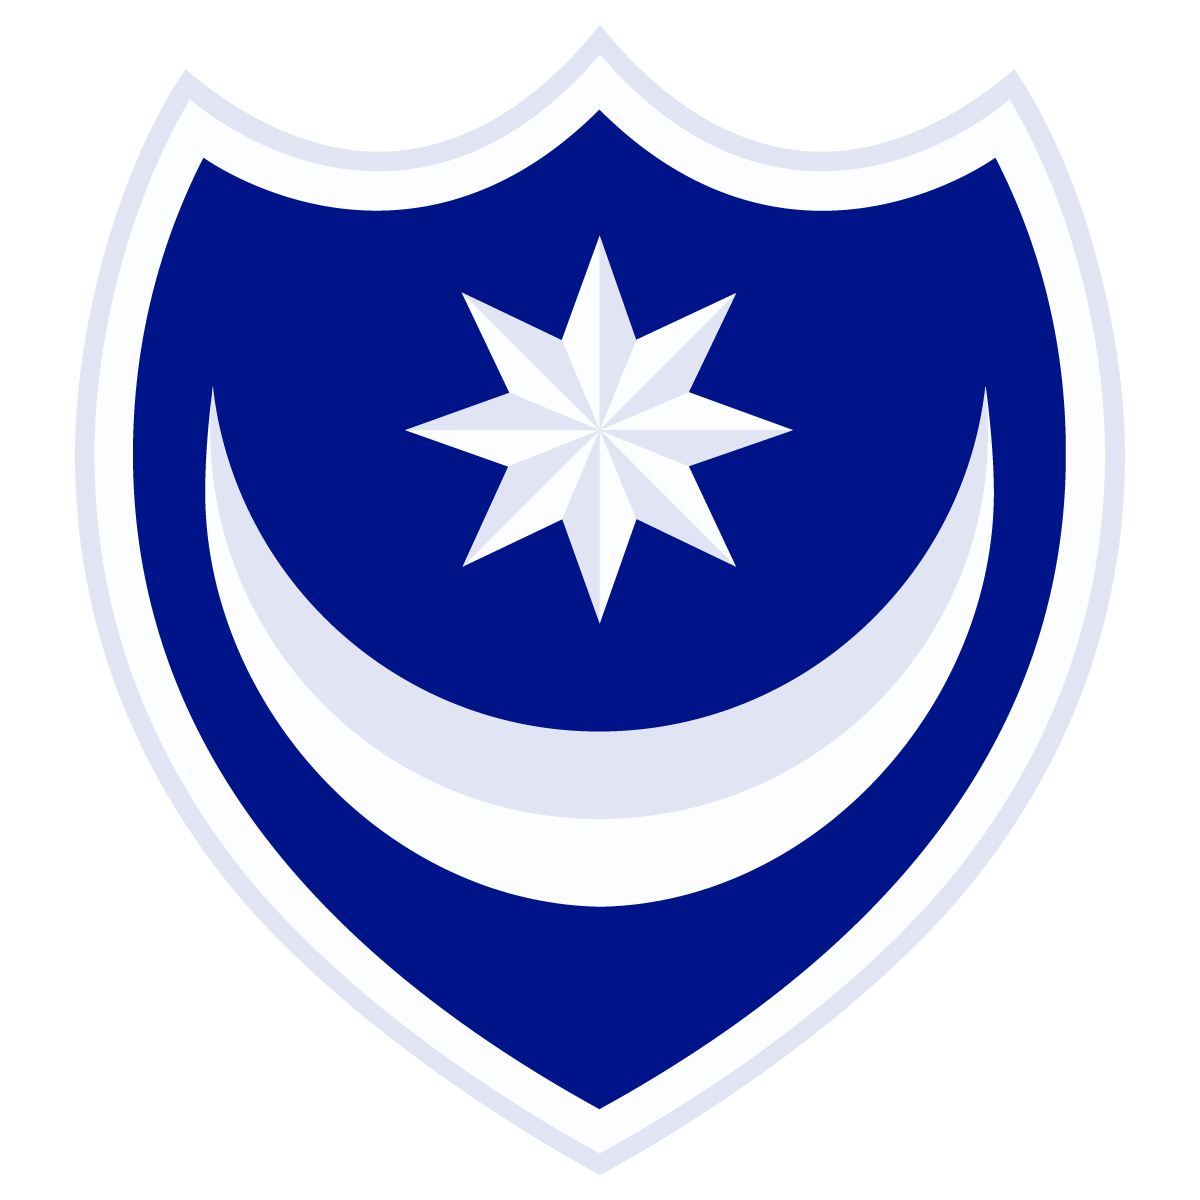 1200x1200 Portsmouth Fc Football Club Crest Logo Vector Free Vector